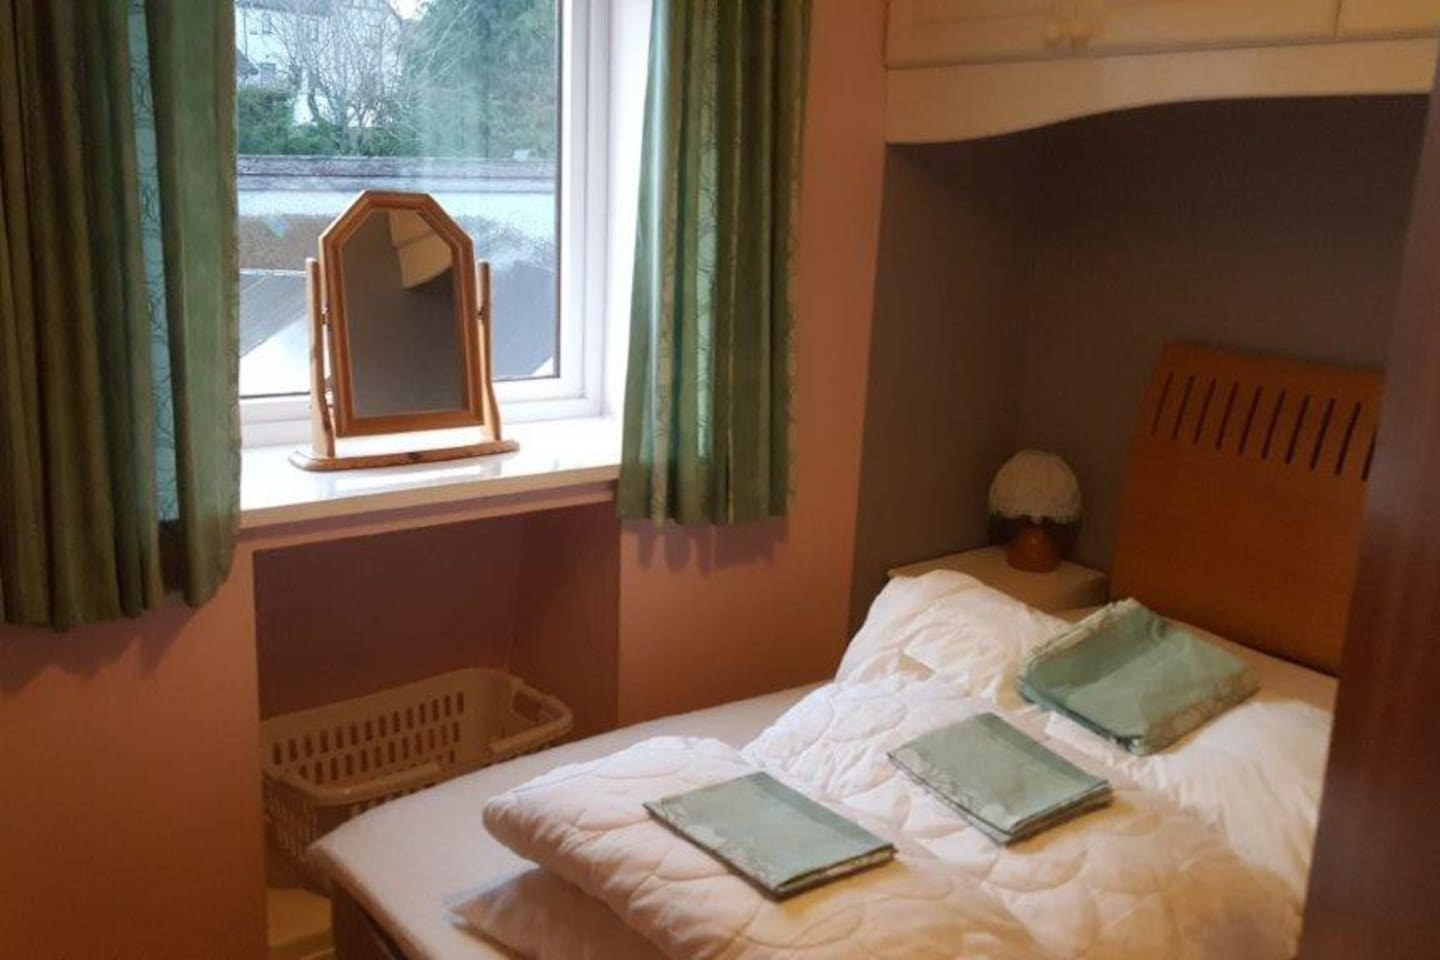 Double bed in bedroom with cupboards over bed